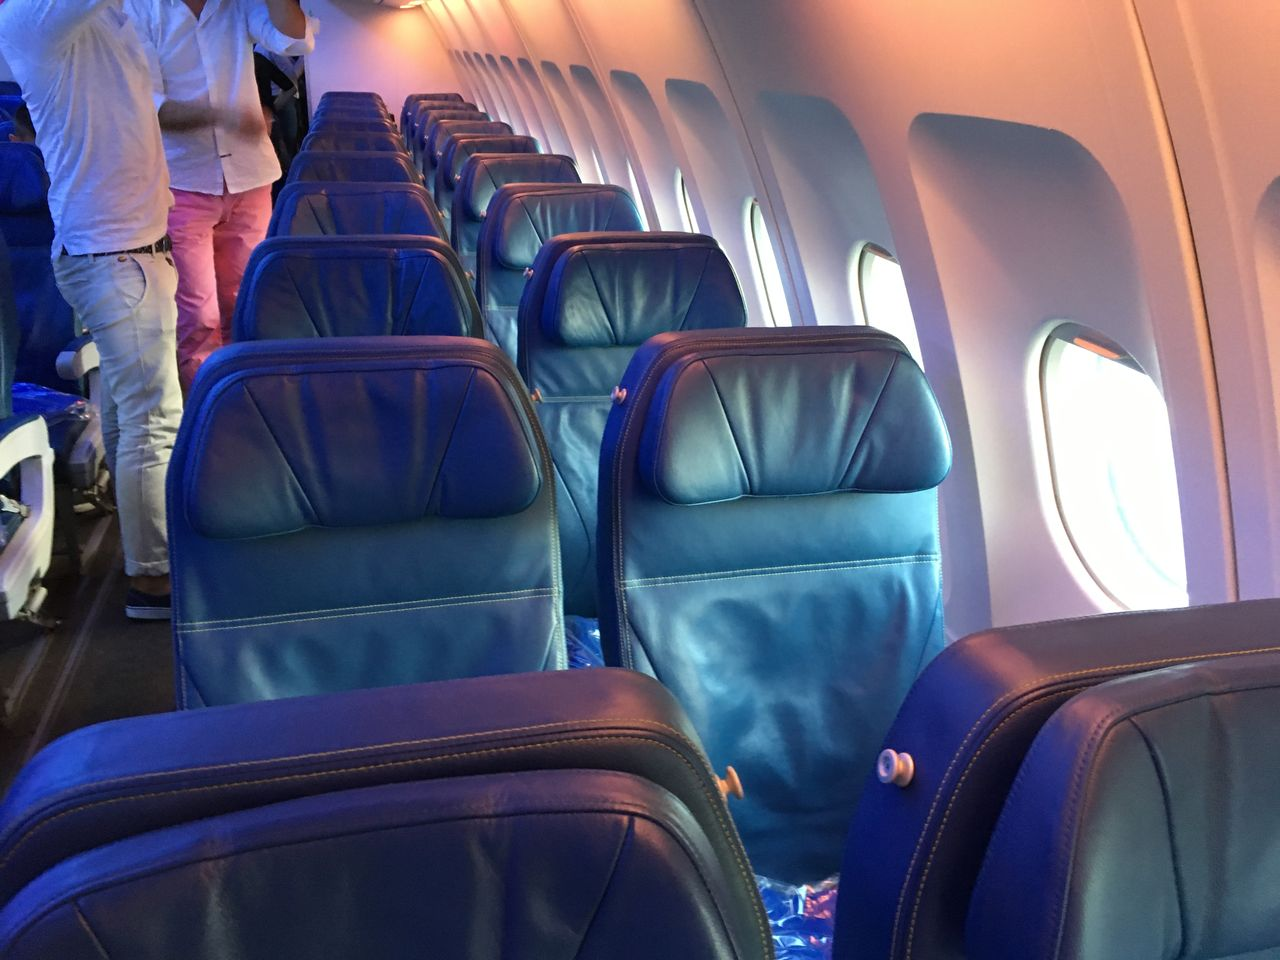 Interieur D'un Avion Xl Airways Xl Airways Tarif Agent De Voyage